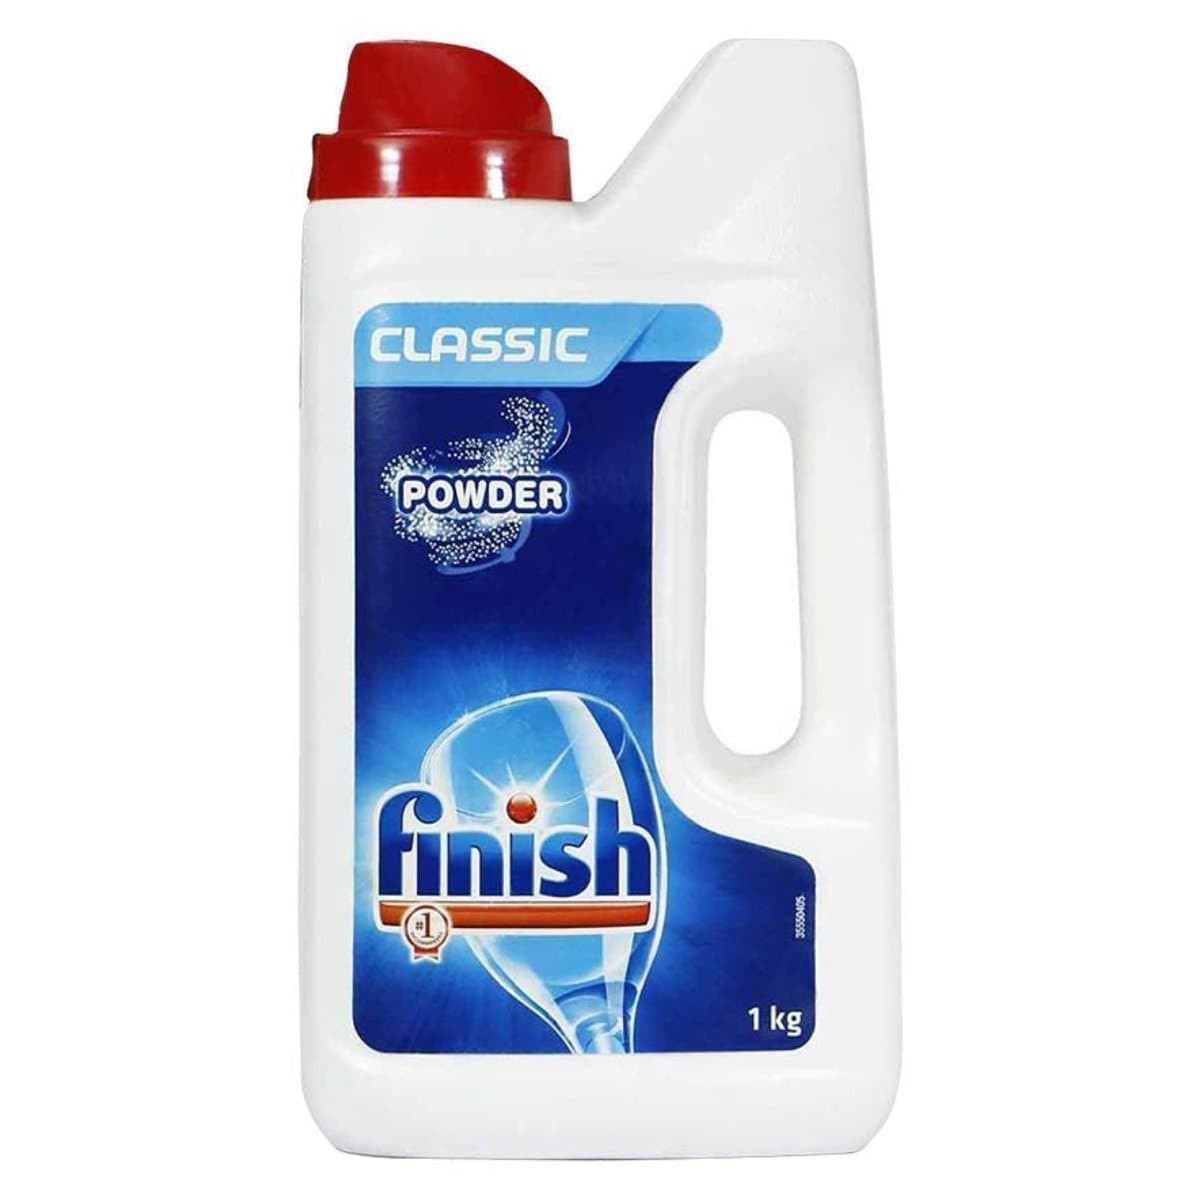 Finish Powder Classic 1kg